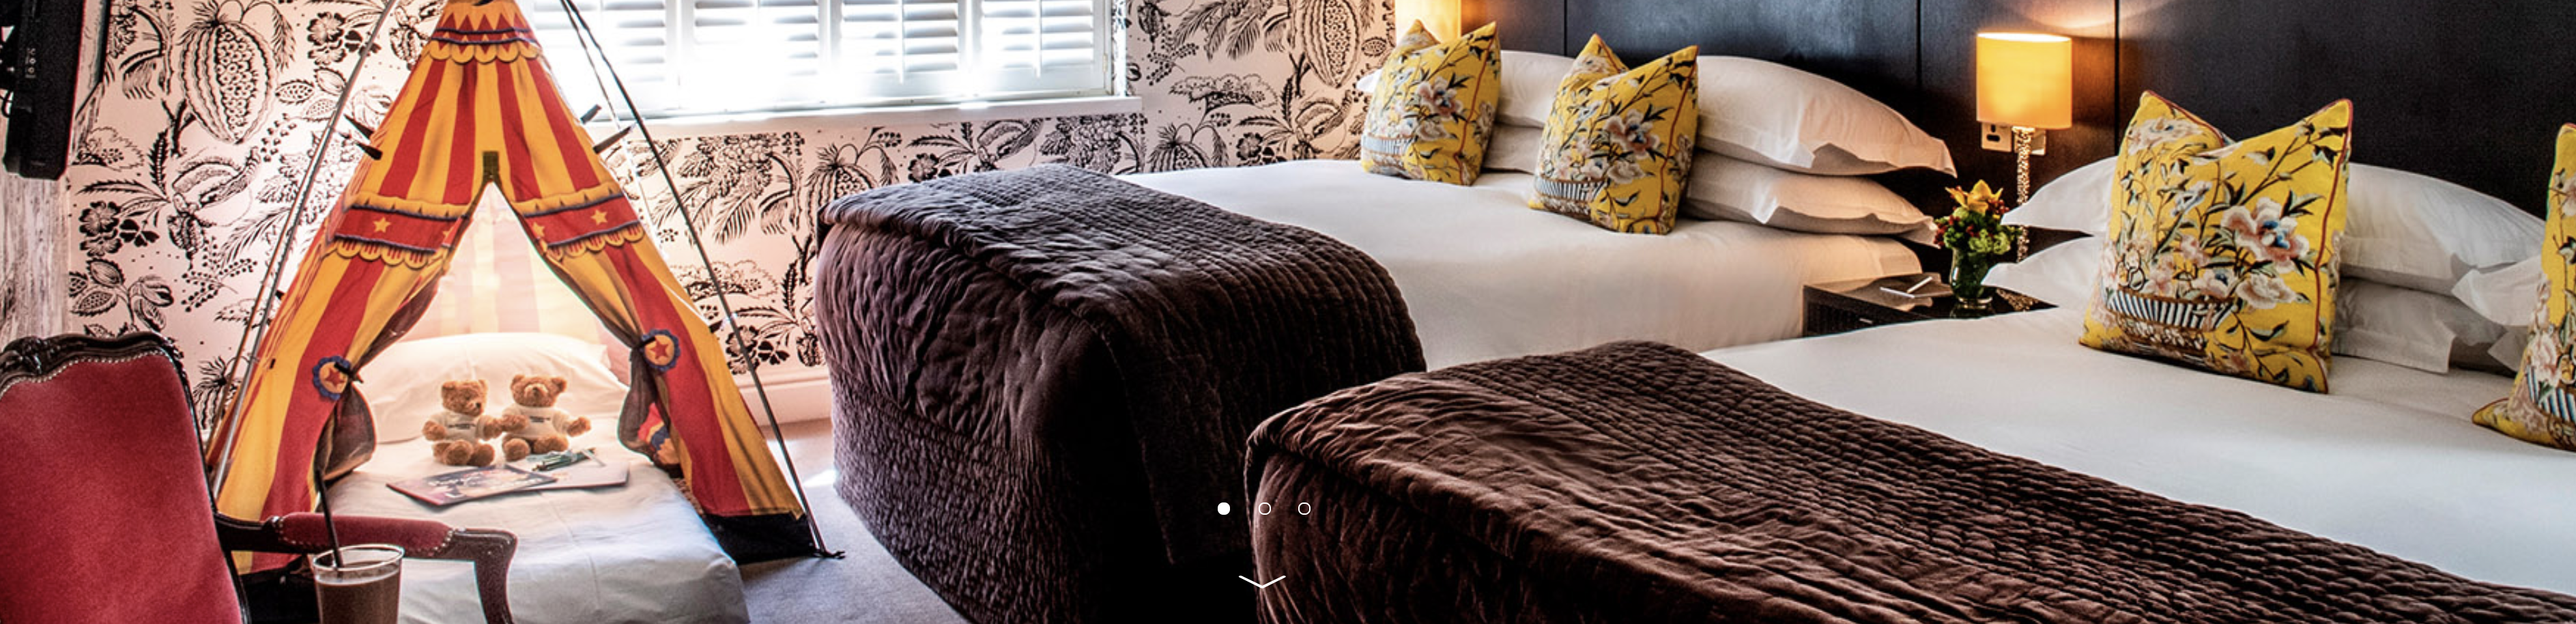 hotels in london with family rooms